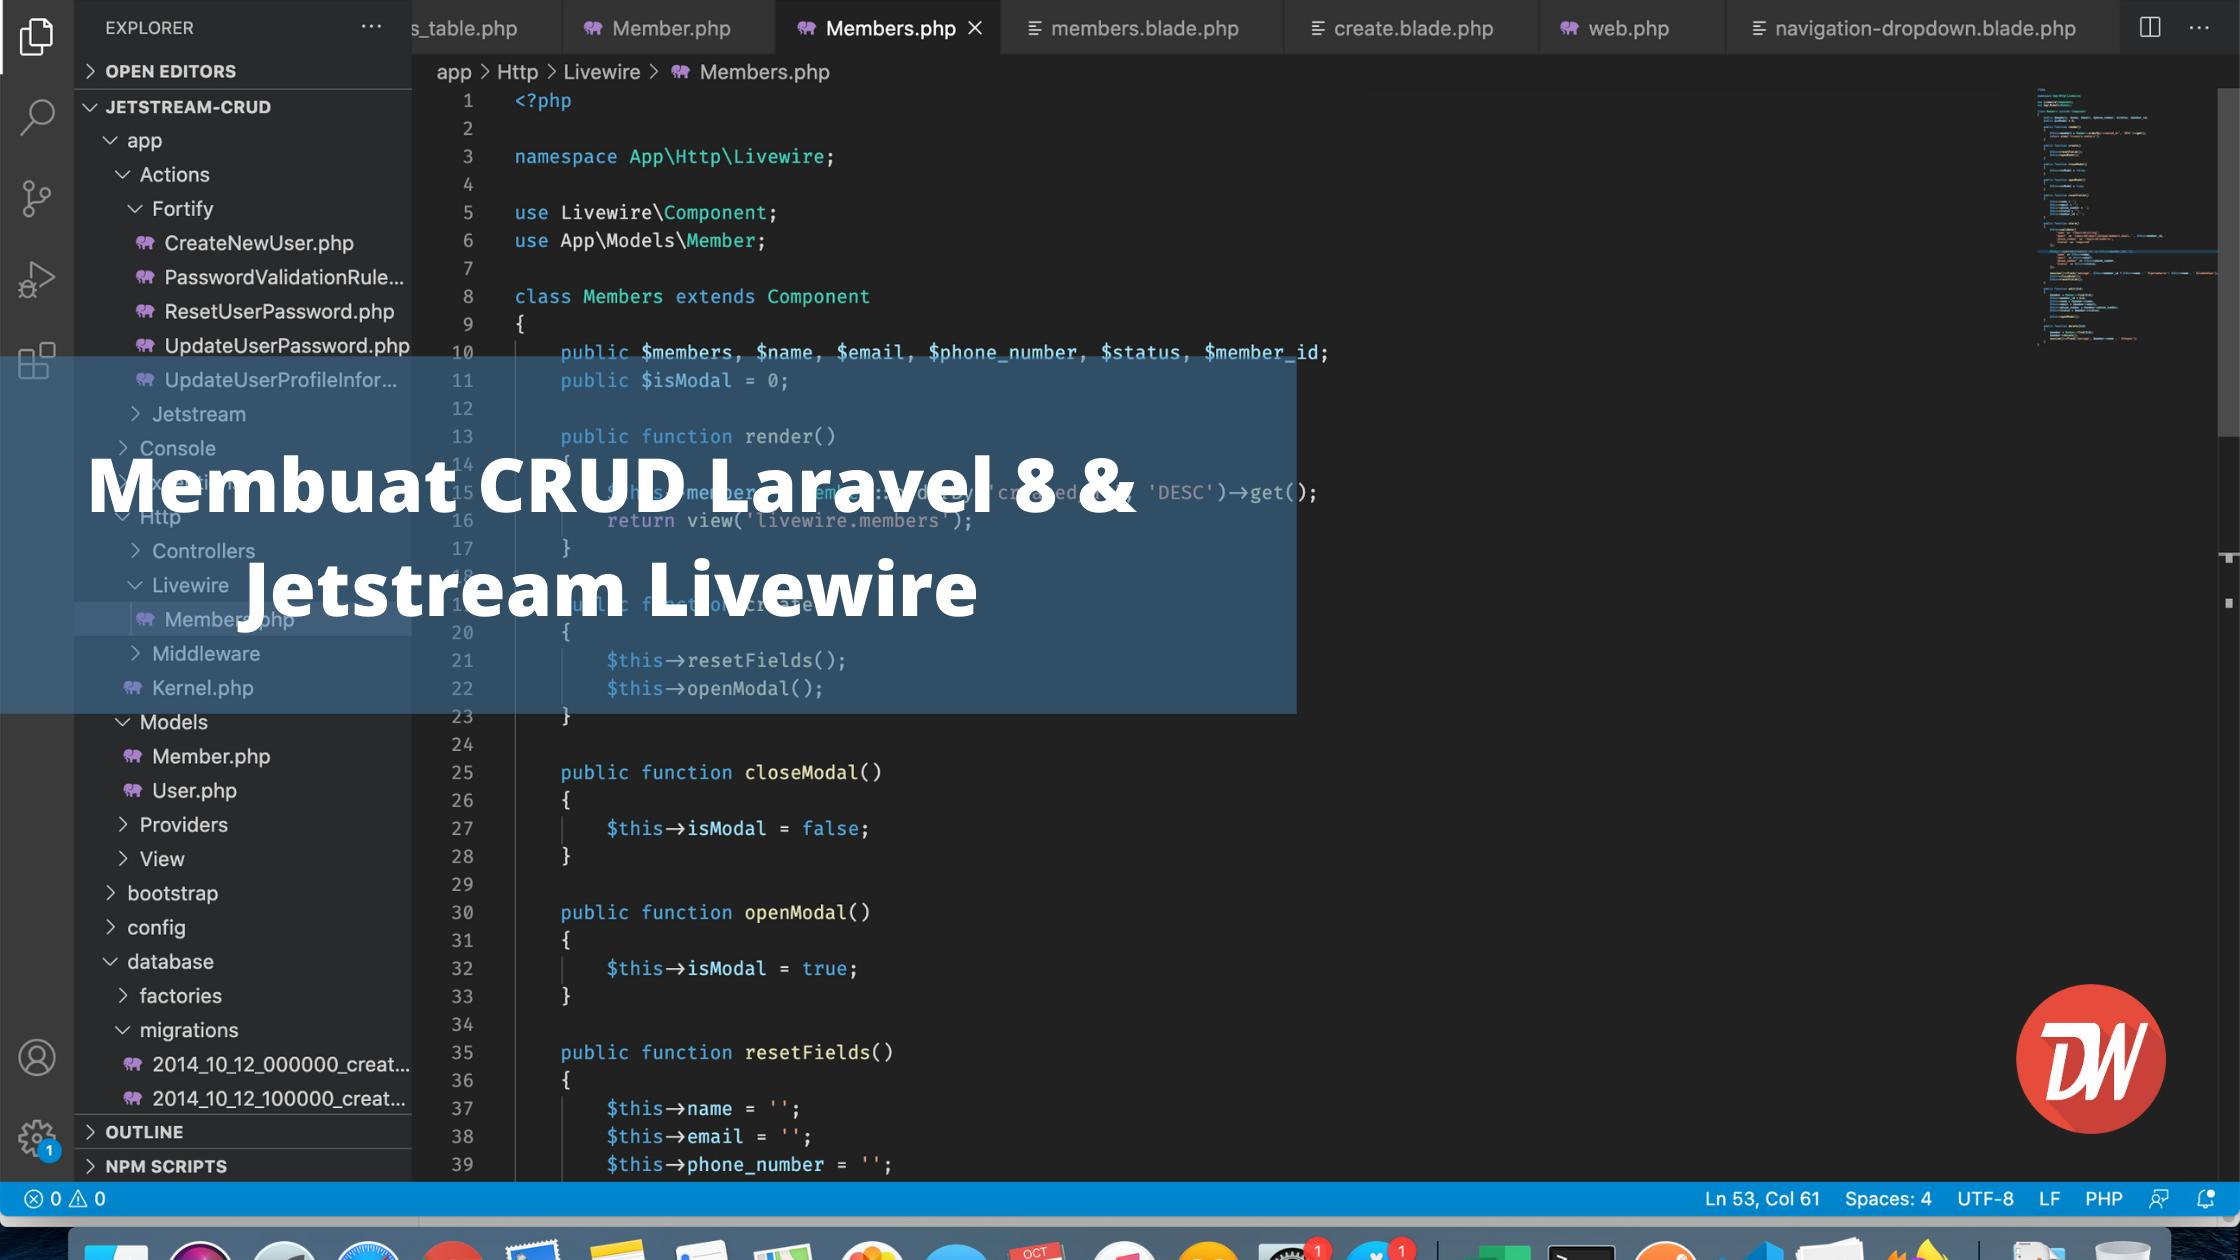 Membuat CRUD Laravel 8 & Jetstream Livewire